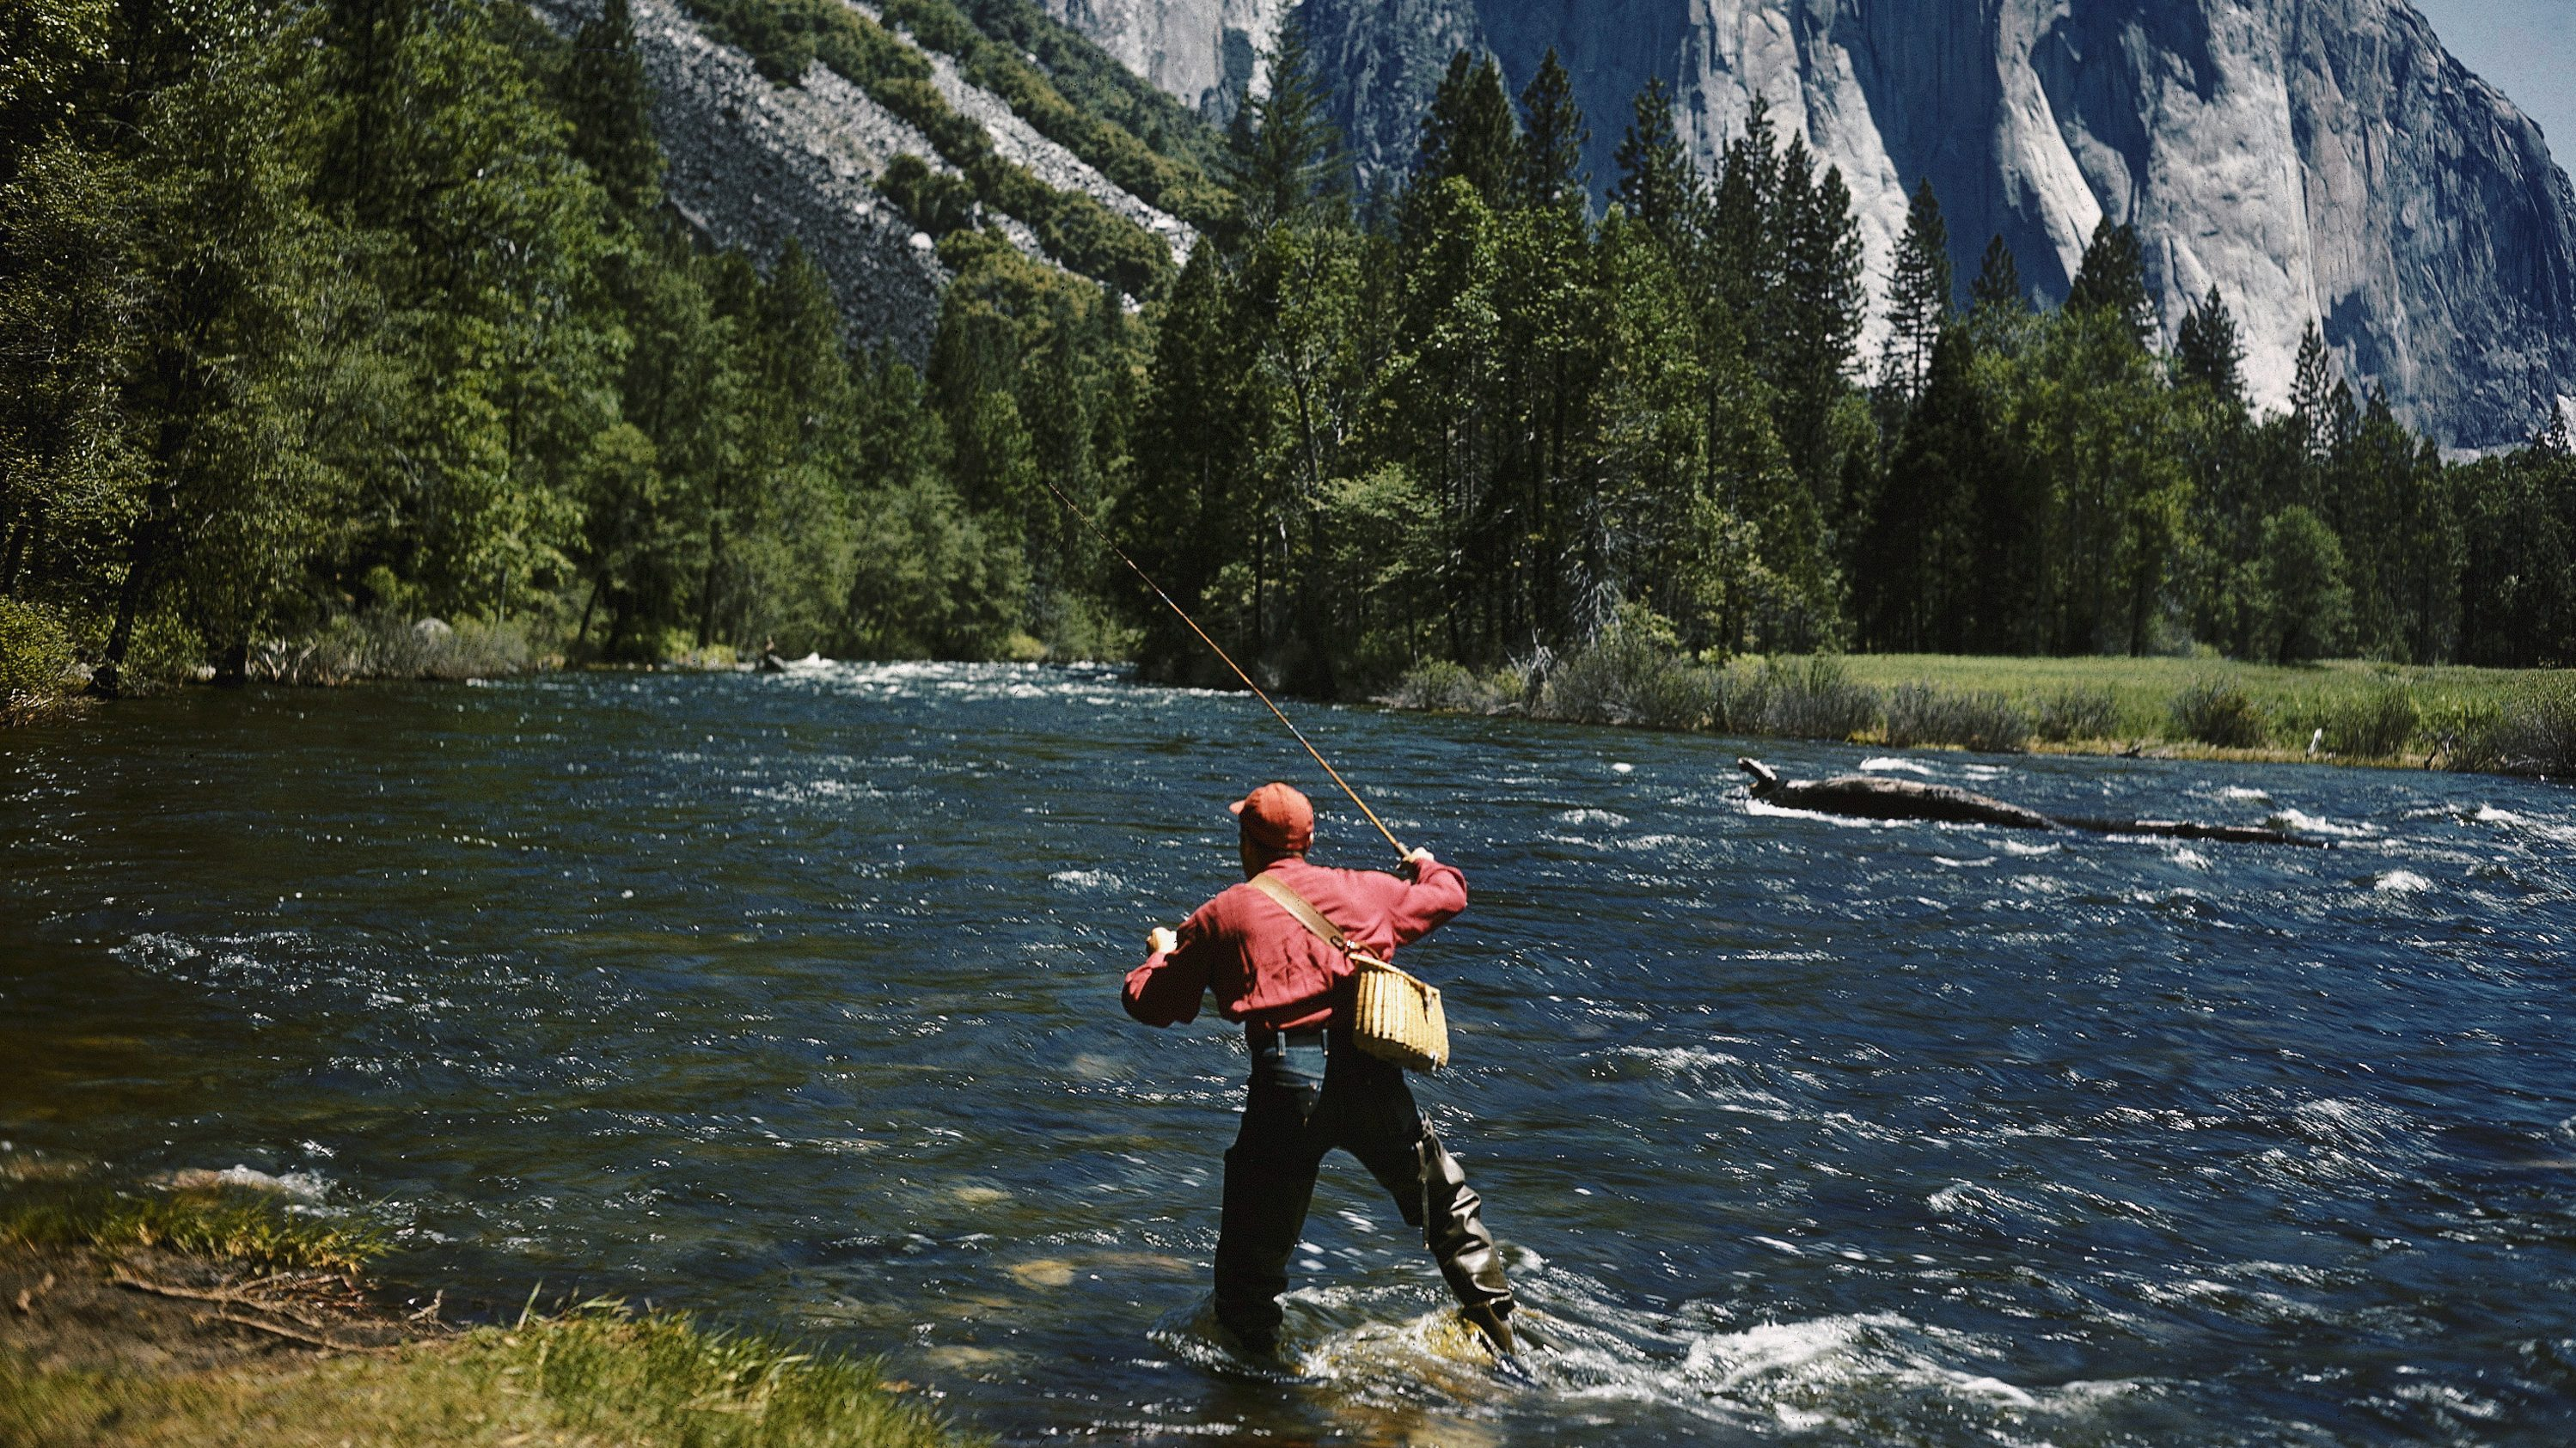 Can Spending Time In Nature Improve >> Spending Two Hours A Week In Nature Is Linked To Better Health Quartz